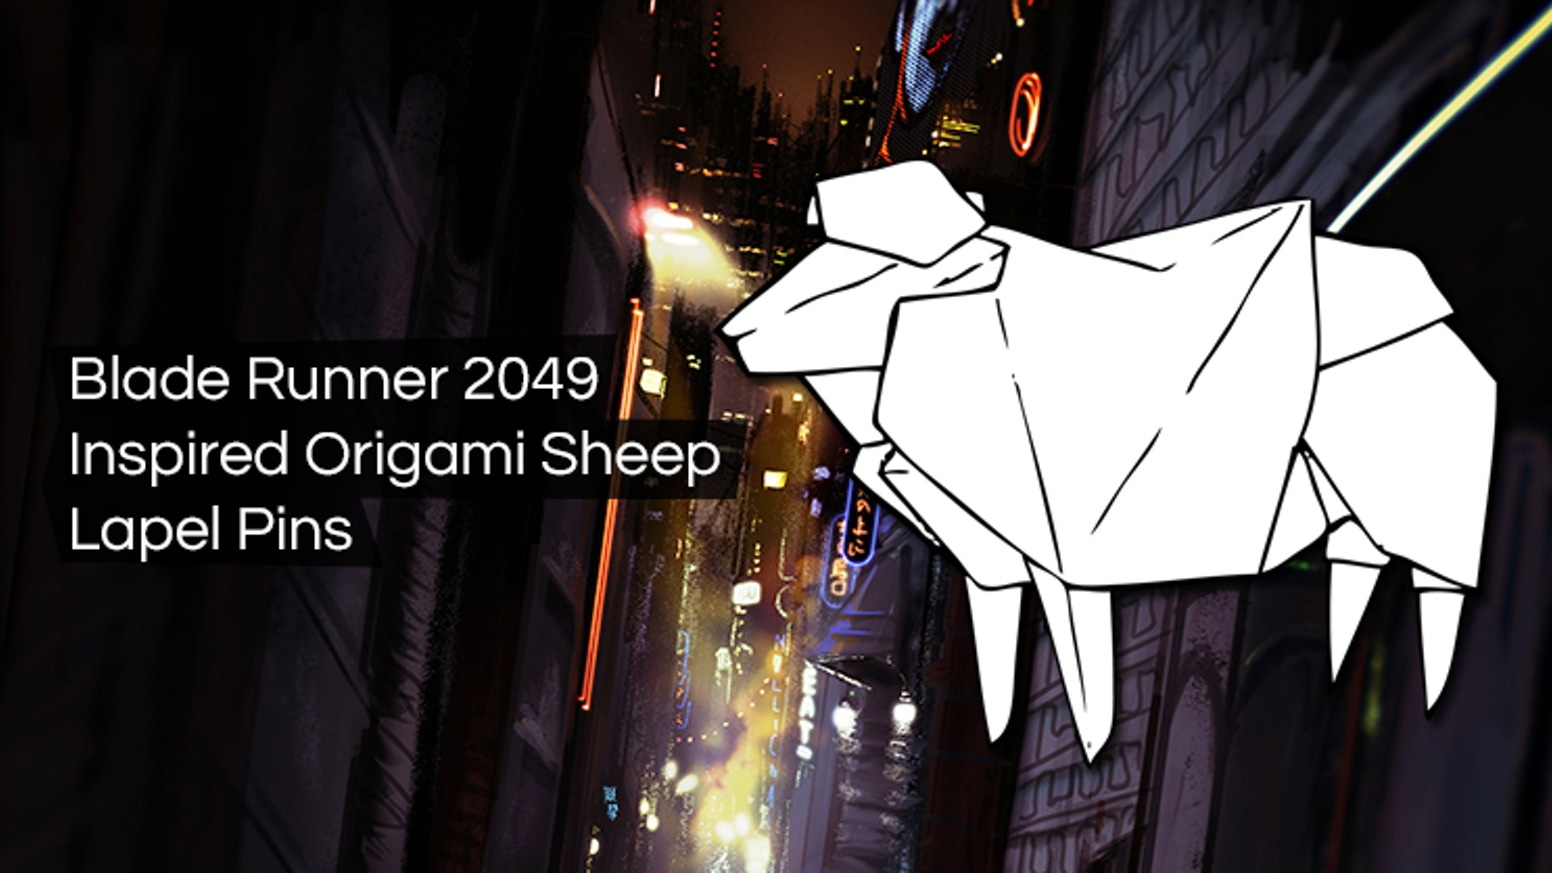 Help me fund making 100 (or more!) Blade Runner 2049 inspired origami sheep lapel pins!